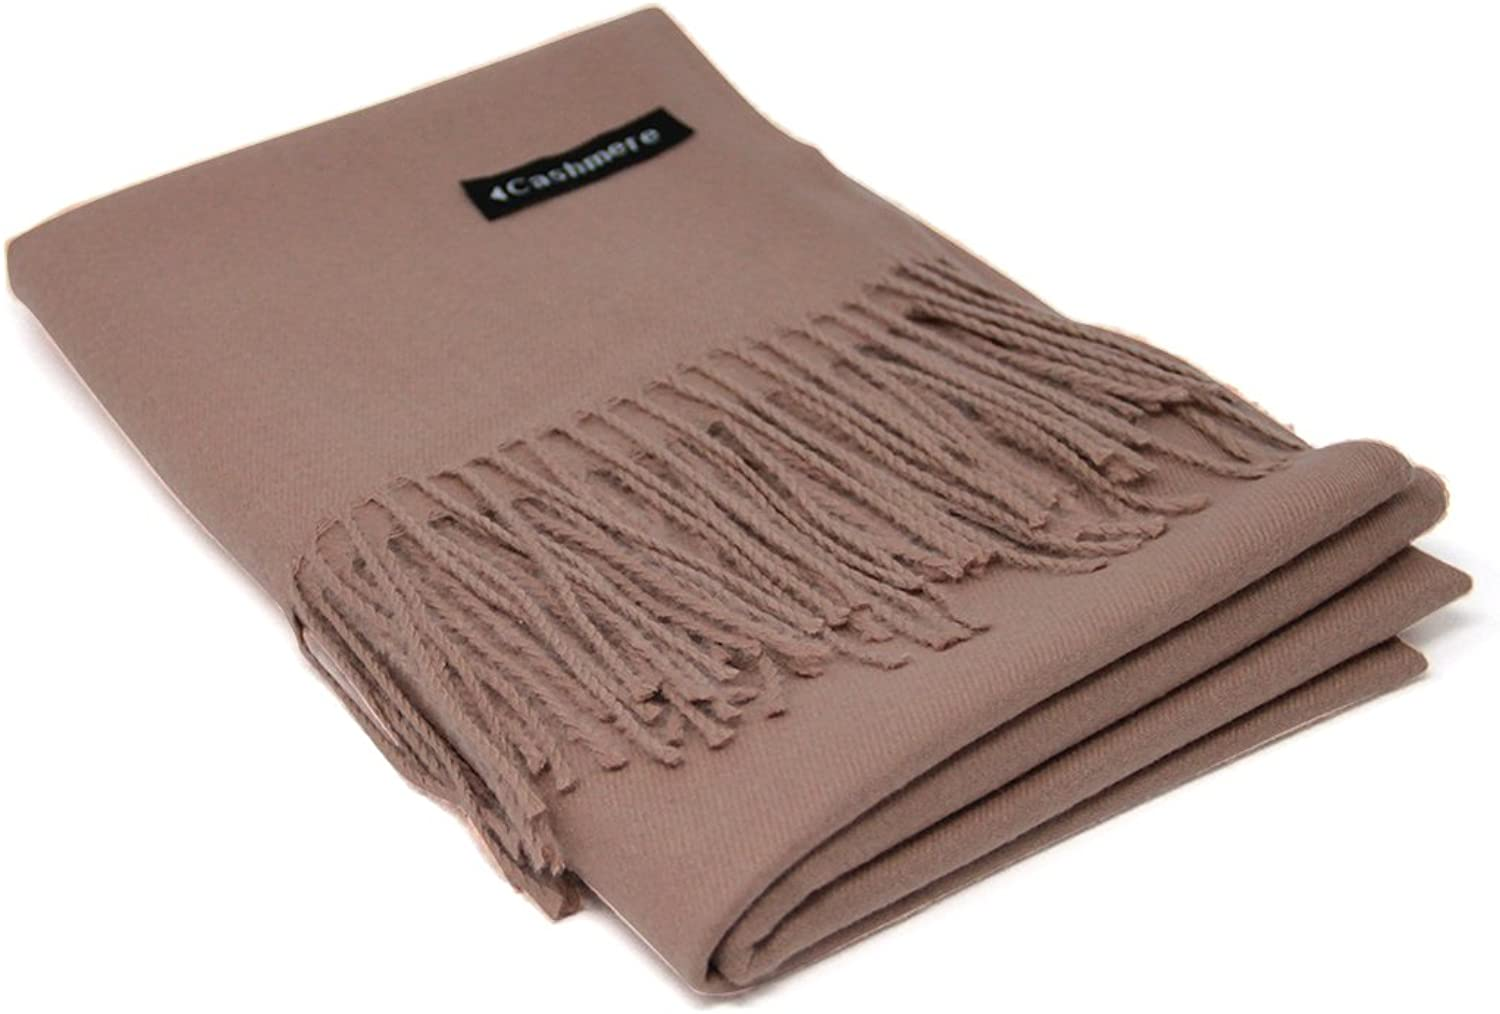 100% Cashmere Scarf  Multiple colors, Gift Boxed, Removable Tag, Large Size, Wear as a Shawl, Wrap, or Cover Up